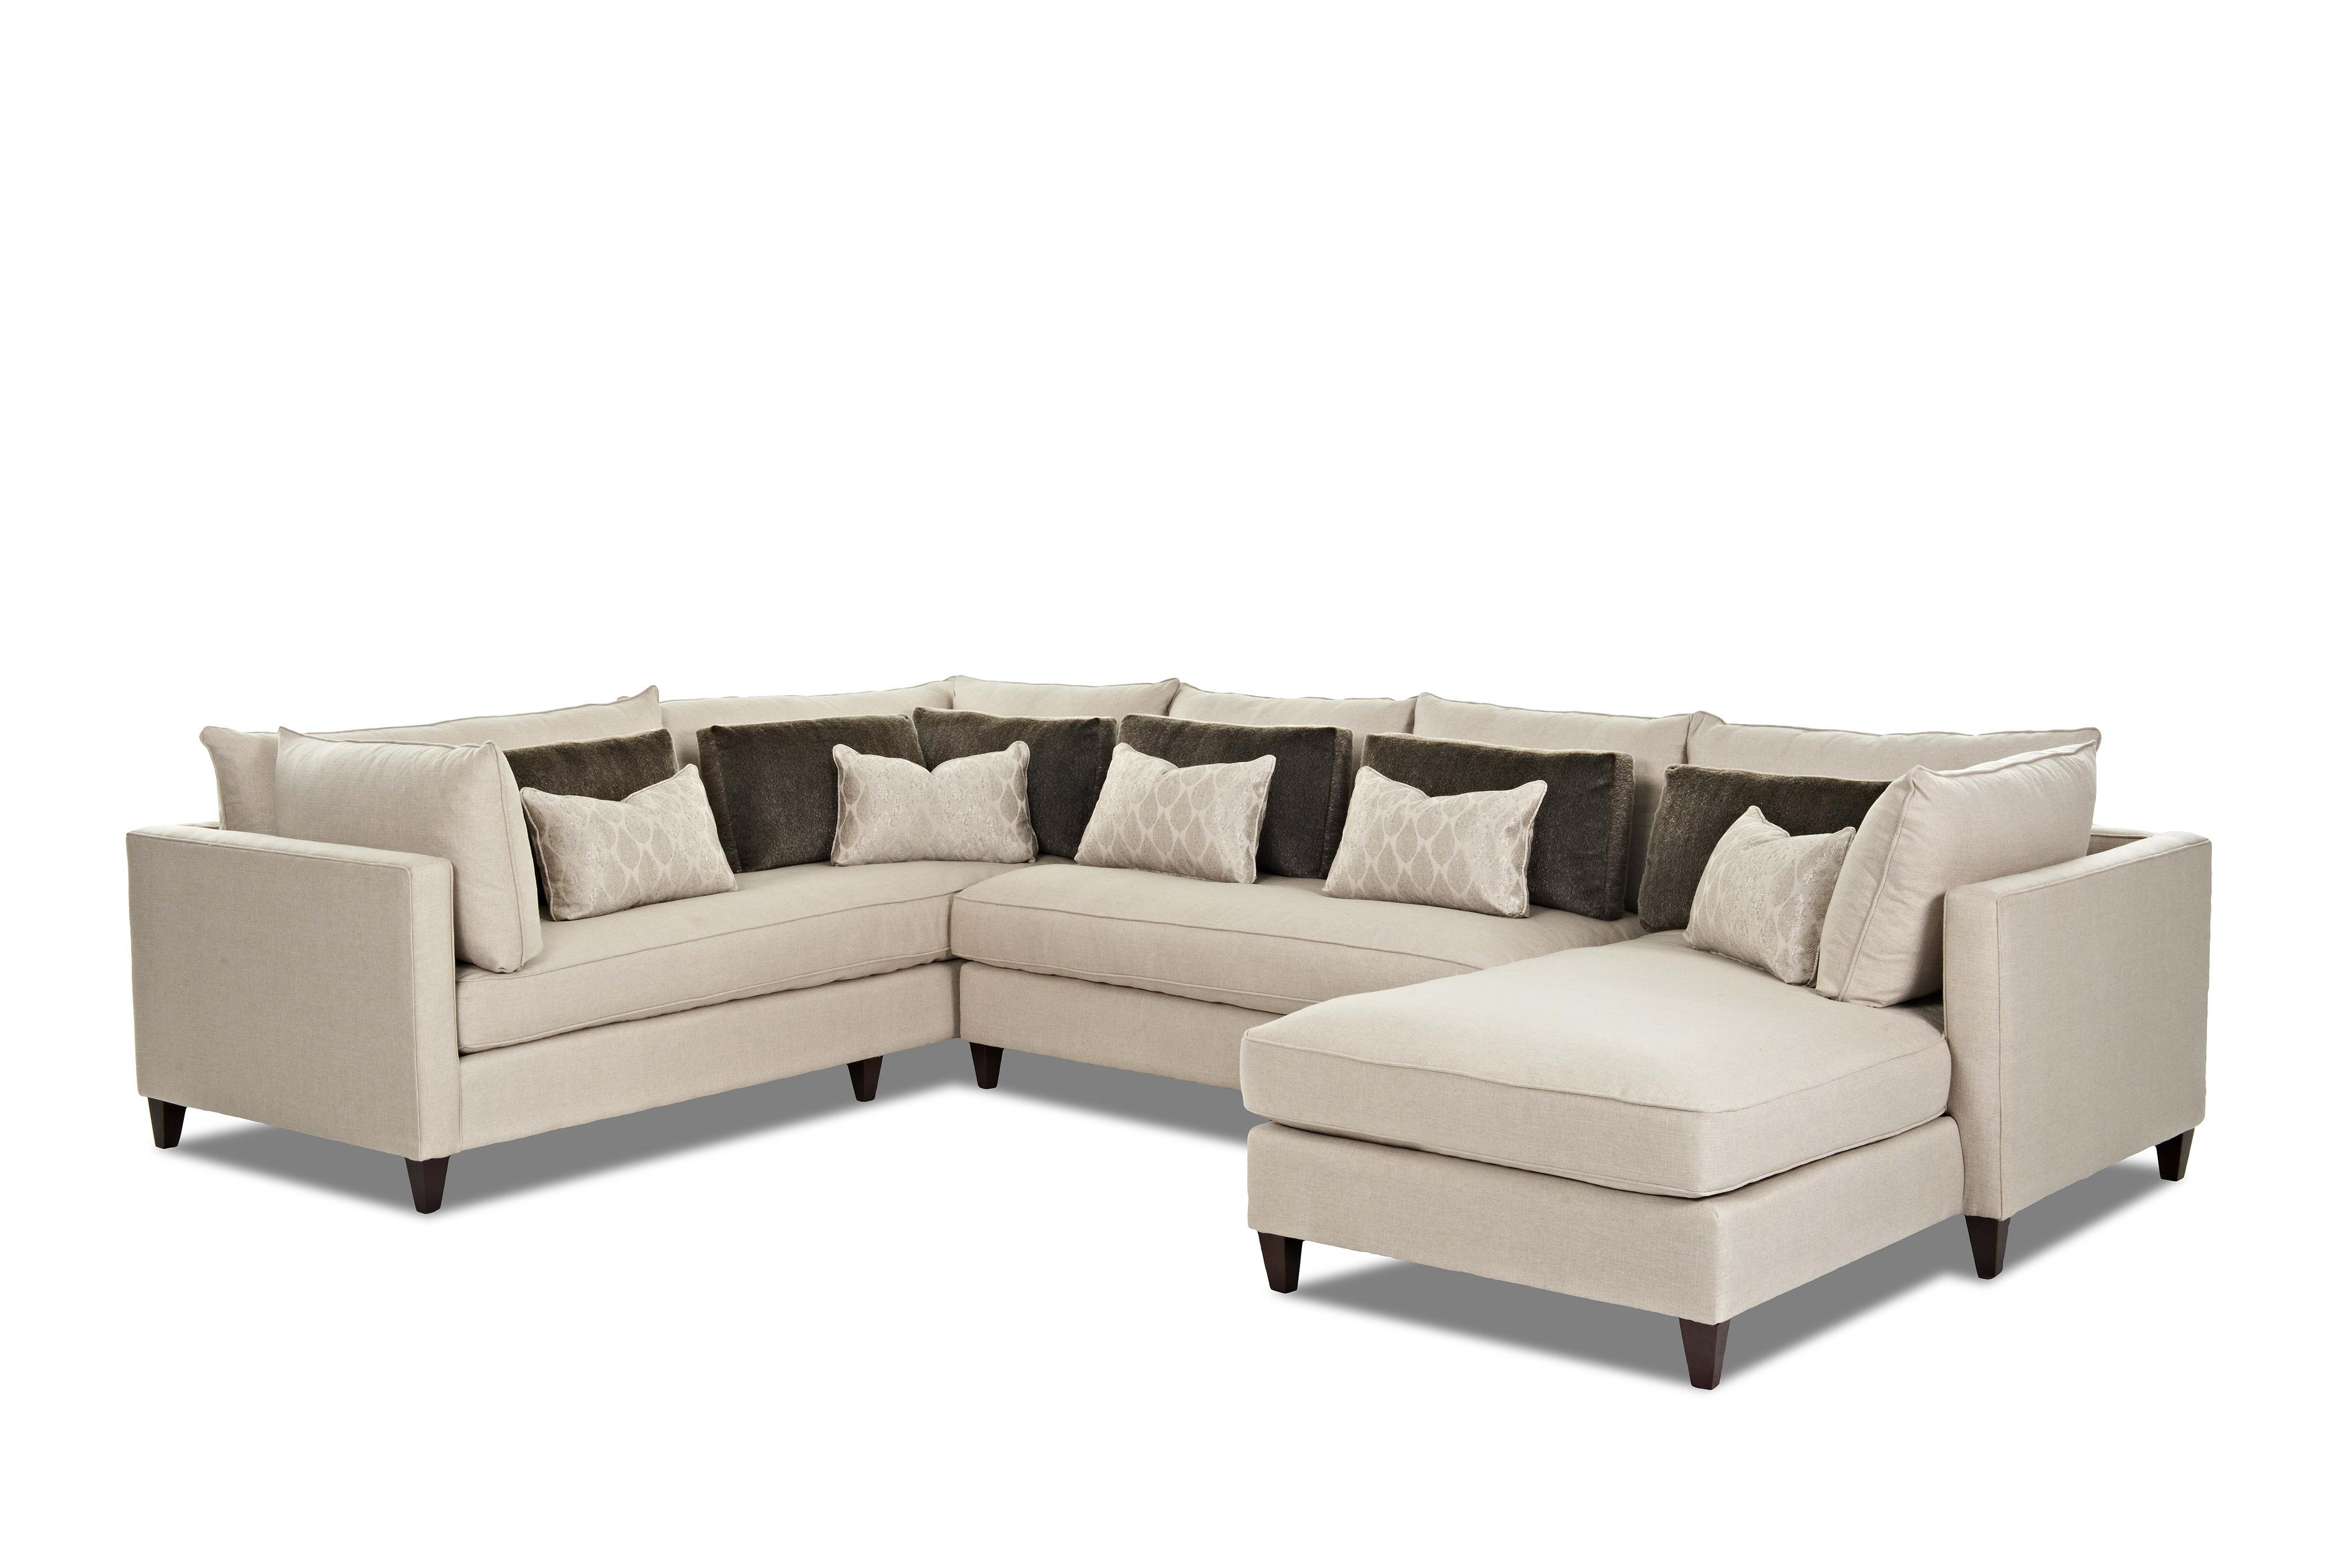 Klaussner Arianna Sofa Sectional - Item Number: D92600R CHASE+Als+S-TRIL-LINE